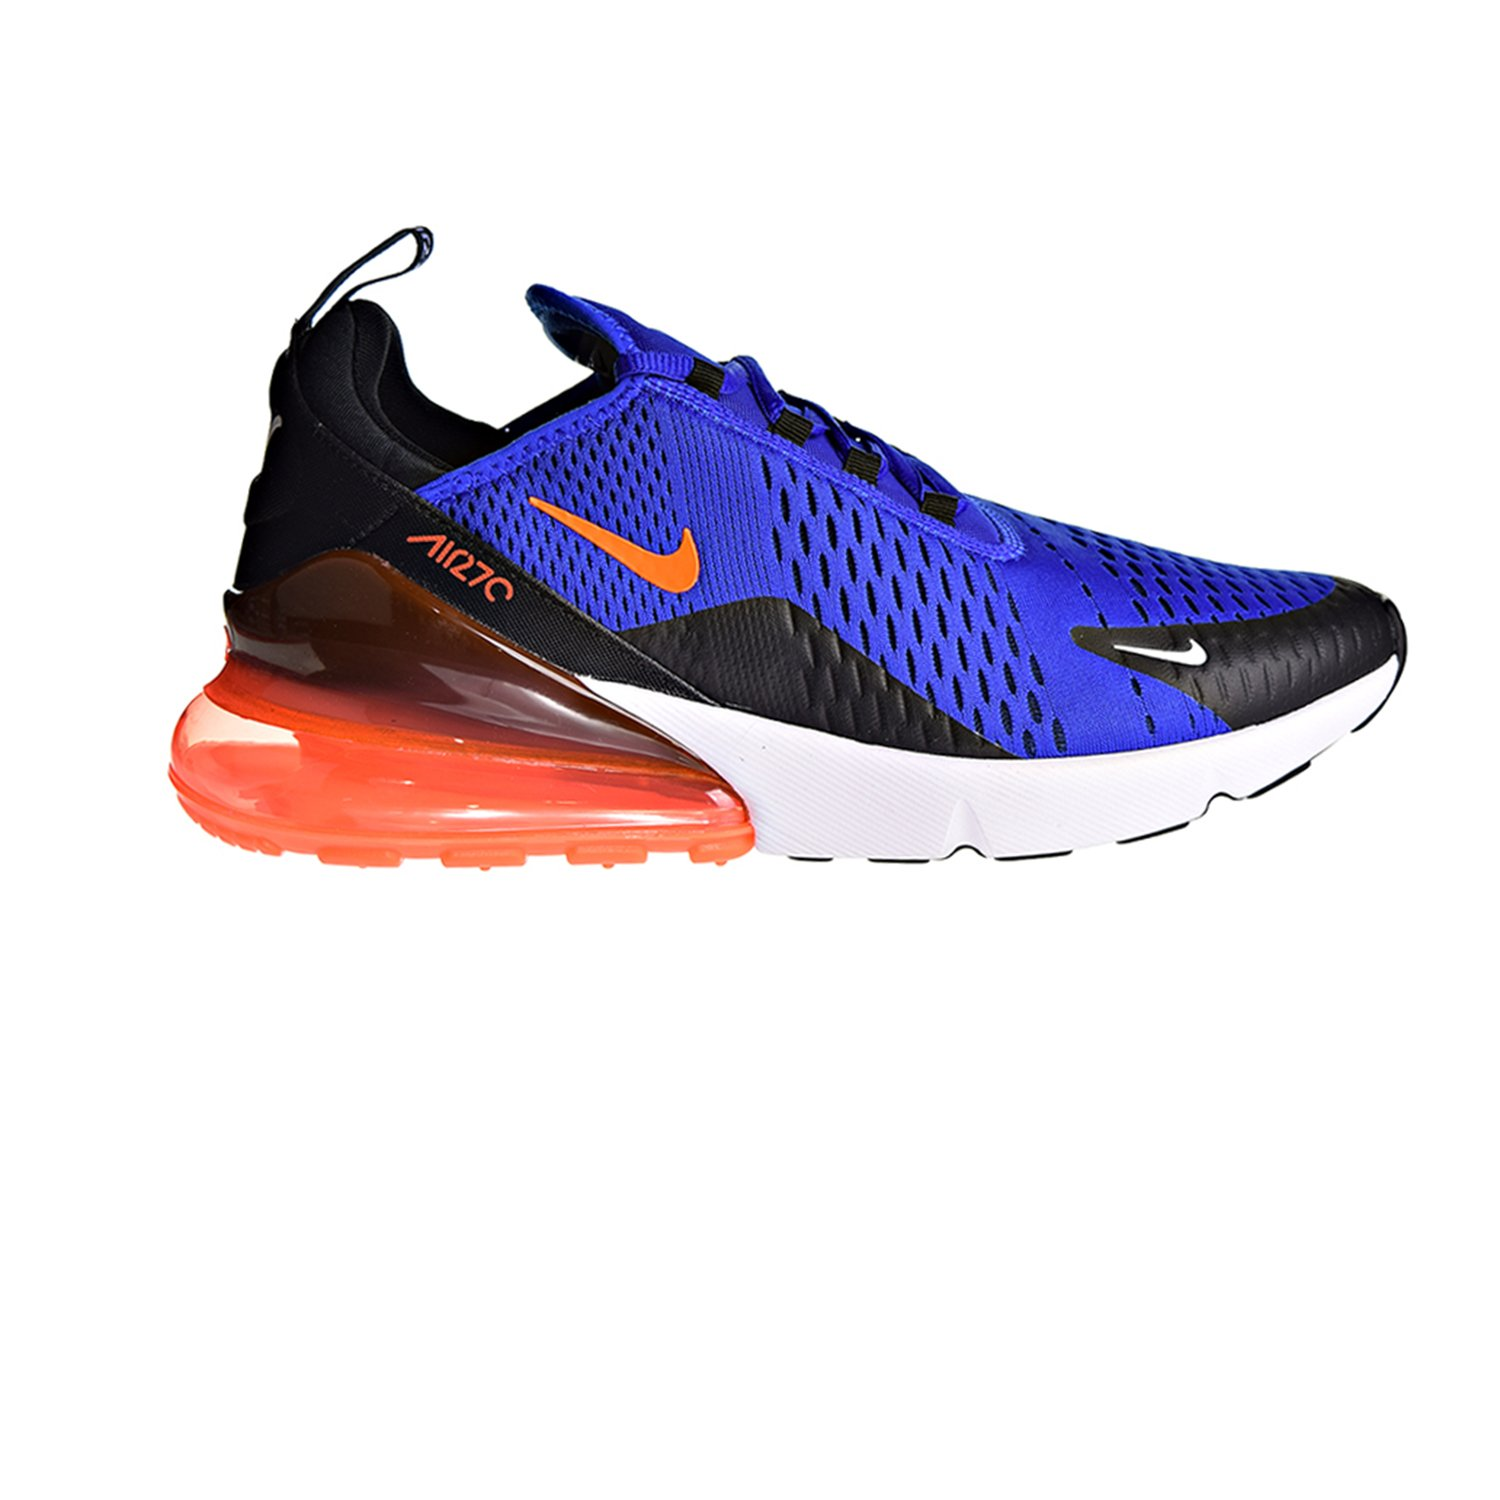 4ce21cca14d1ba Galleon - NIKE Air Max 270 Men s Shoes Racer Blue Hyper Crimson Black  Ah8050-401 (8.5 D(M) US)